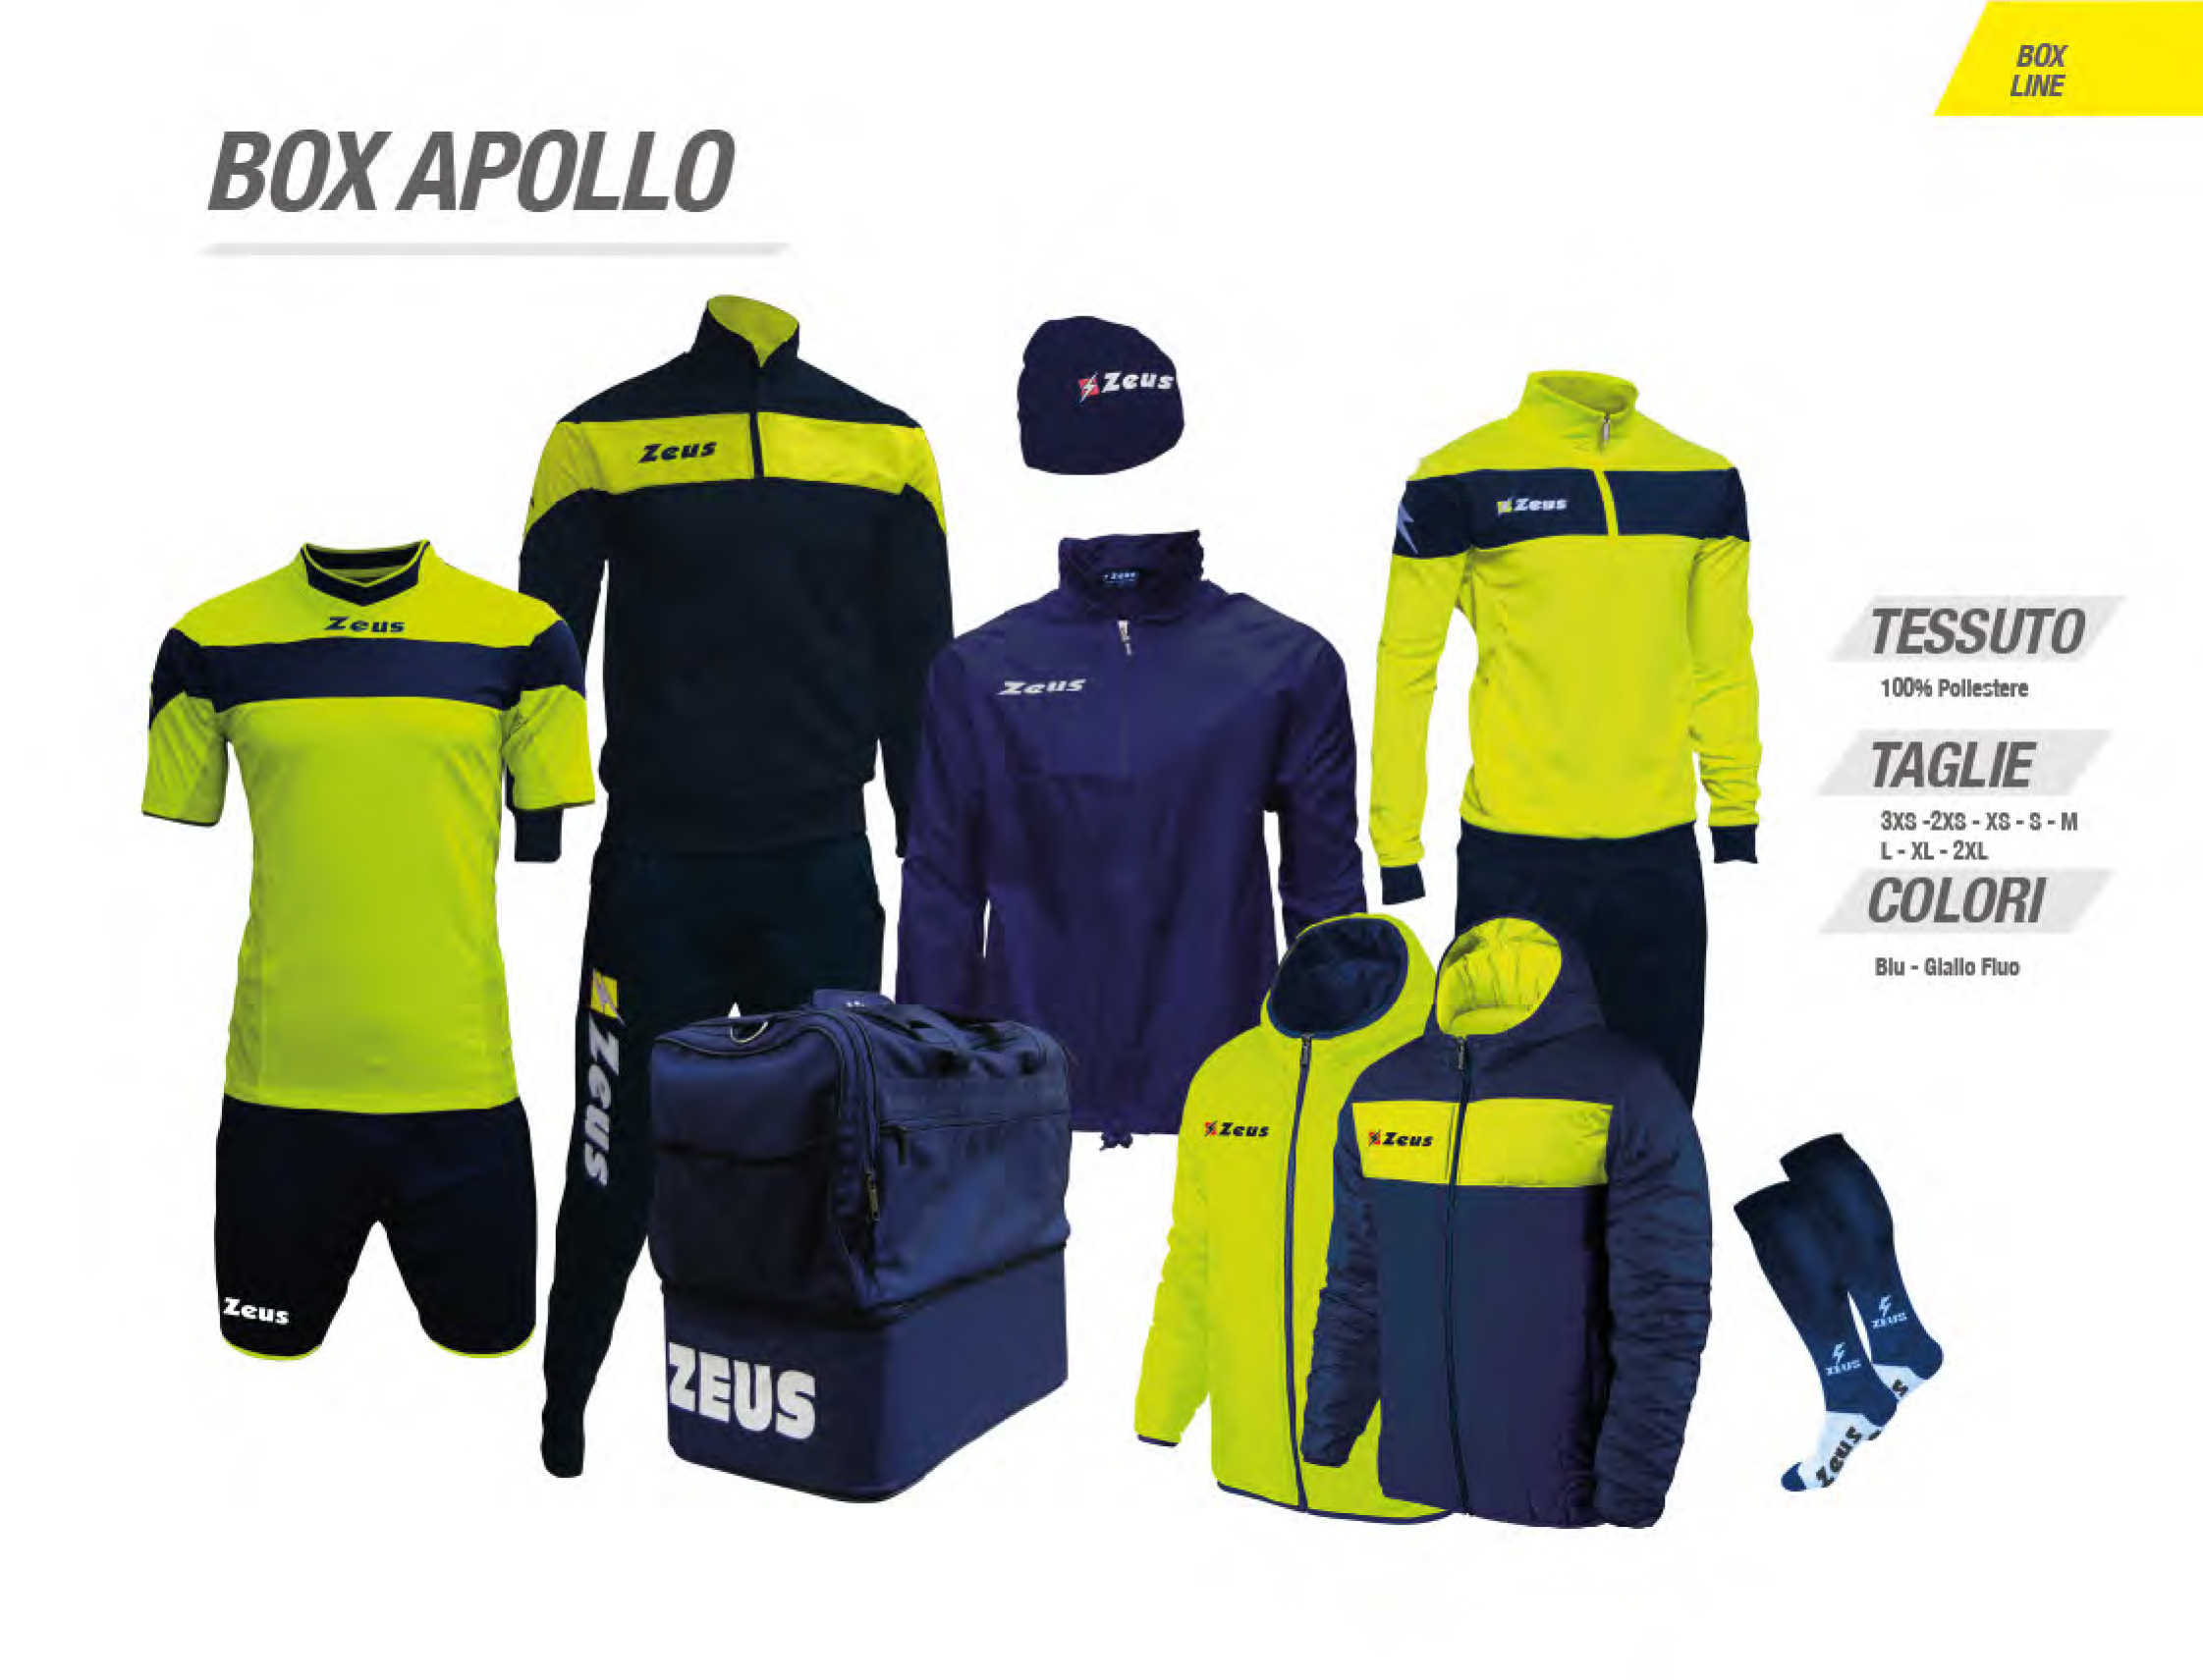 BOX APOLLO : 85  €